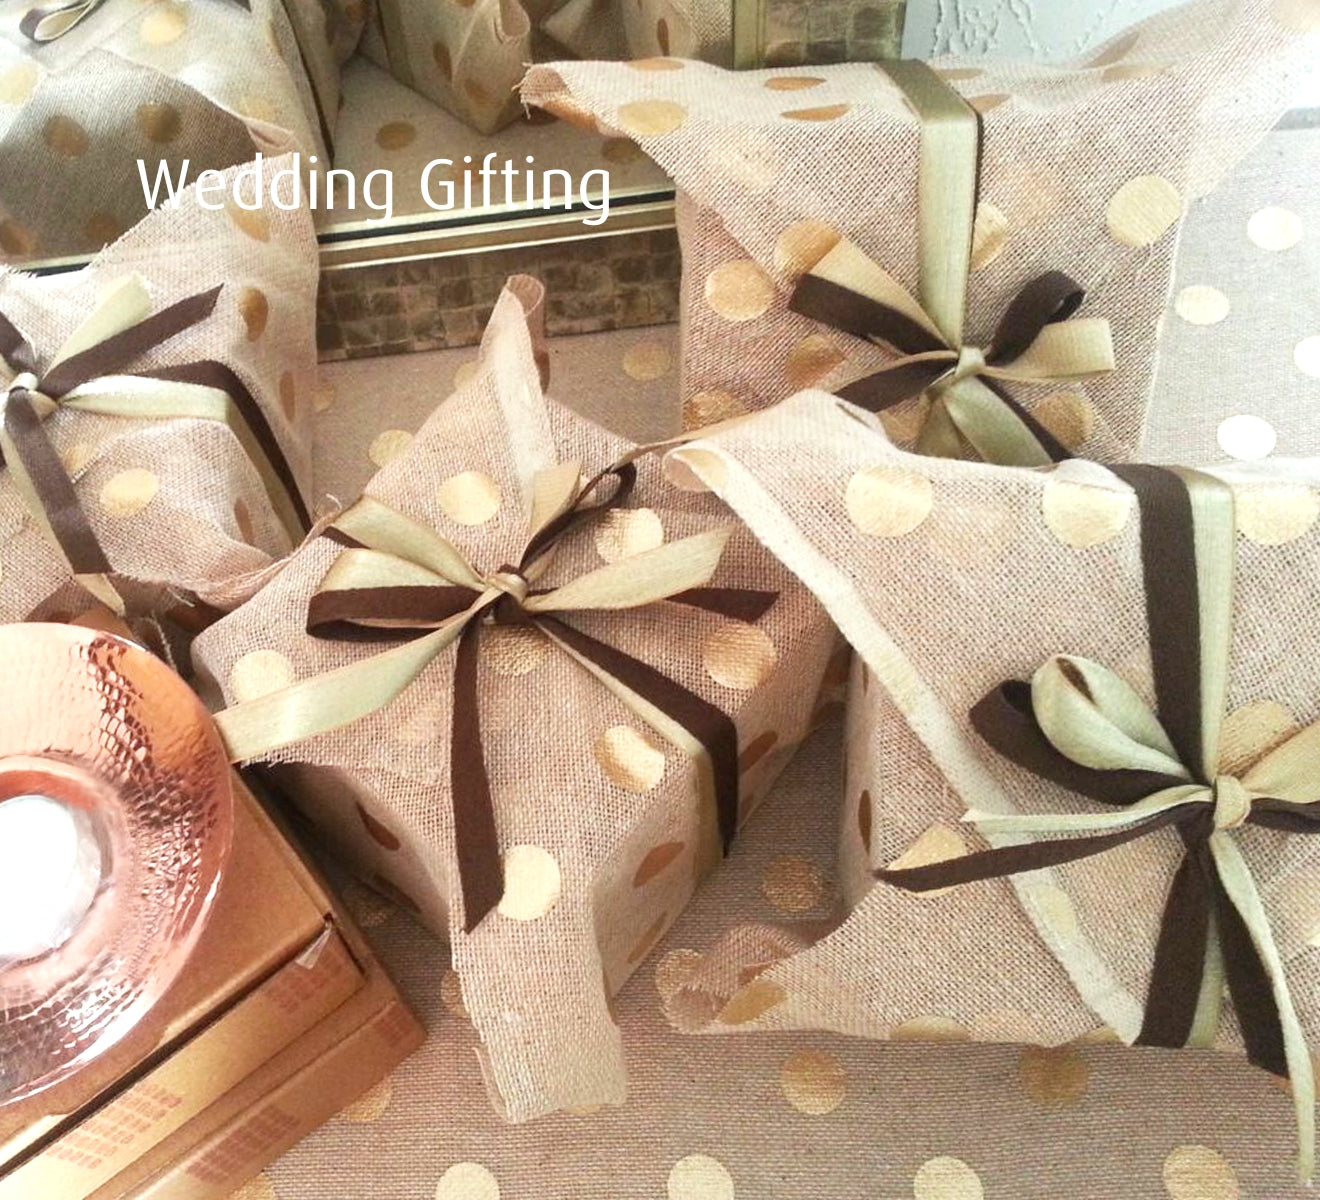 Wedding Favors and Wedding Gifting